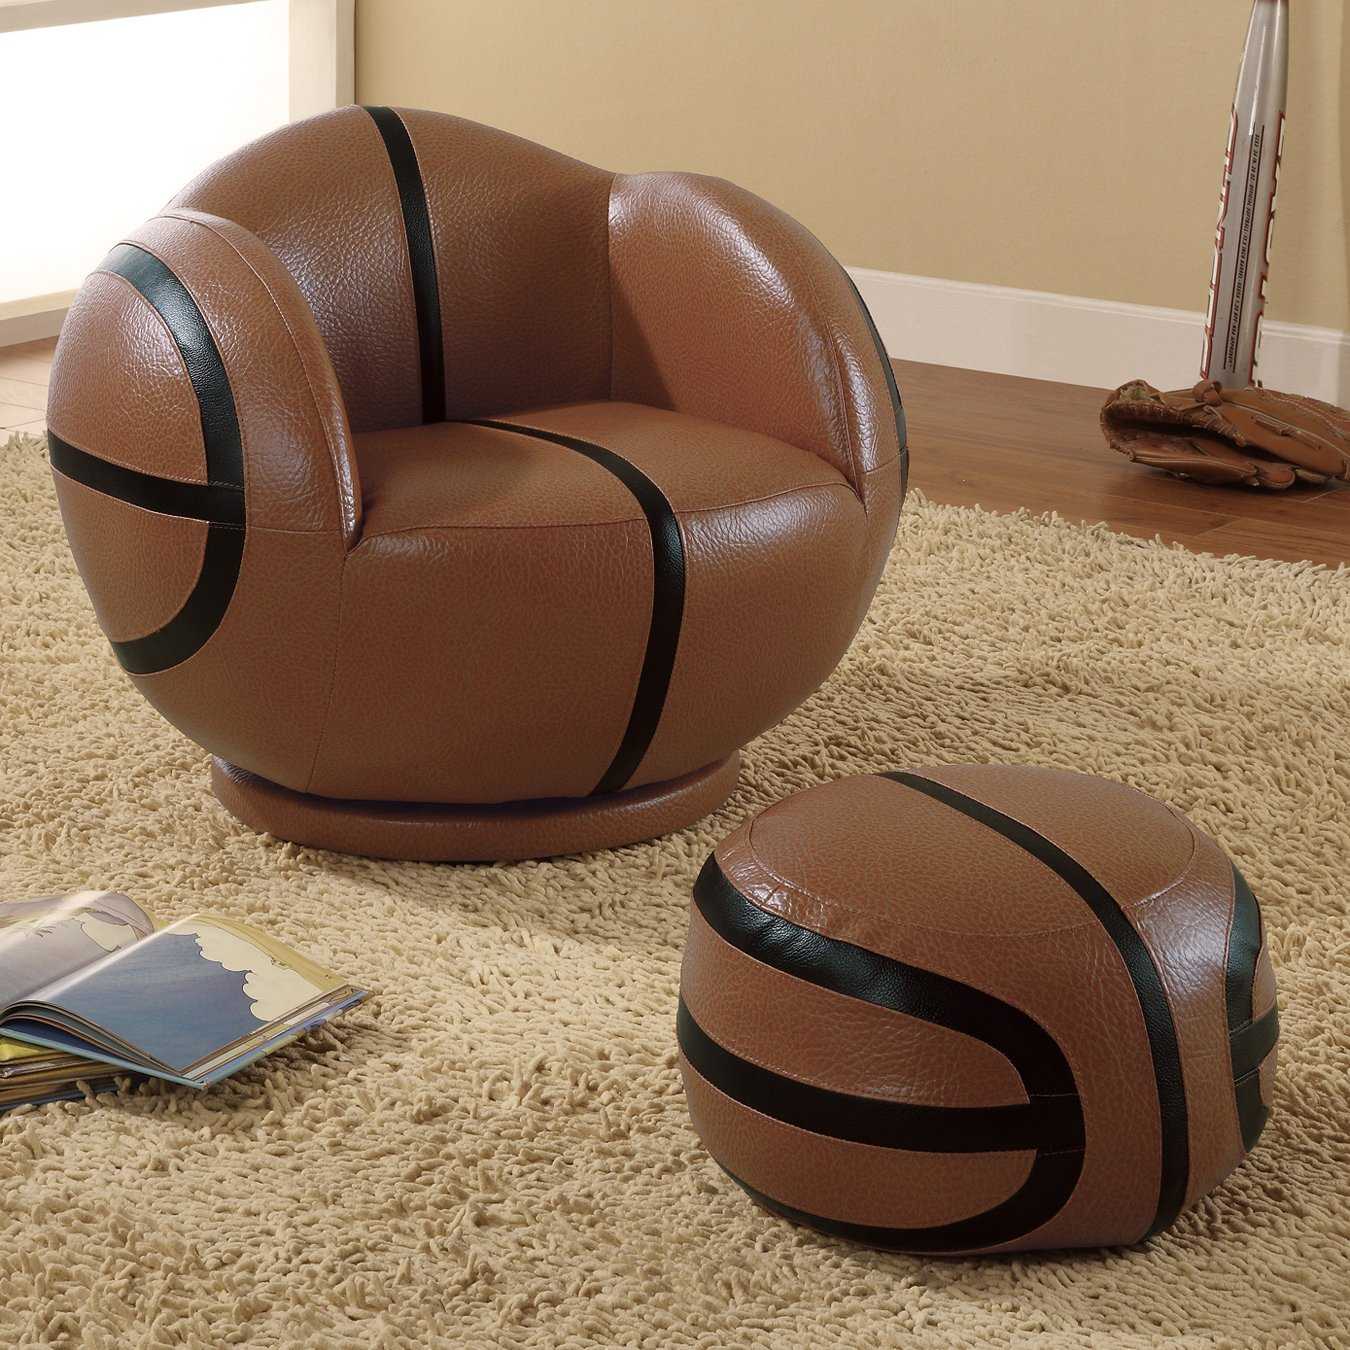 Fantastic Small Kids Sports Chair And Ottoman Set With Brown Black Vinyl Upholstery Basketball Theme By Coaster Fine Furniture Andrewgaddart Wooden Chair Designs For Living Room Andrewgaddartcom